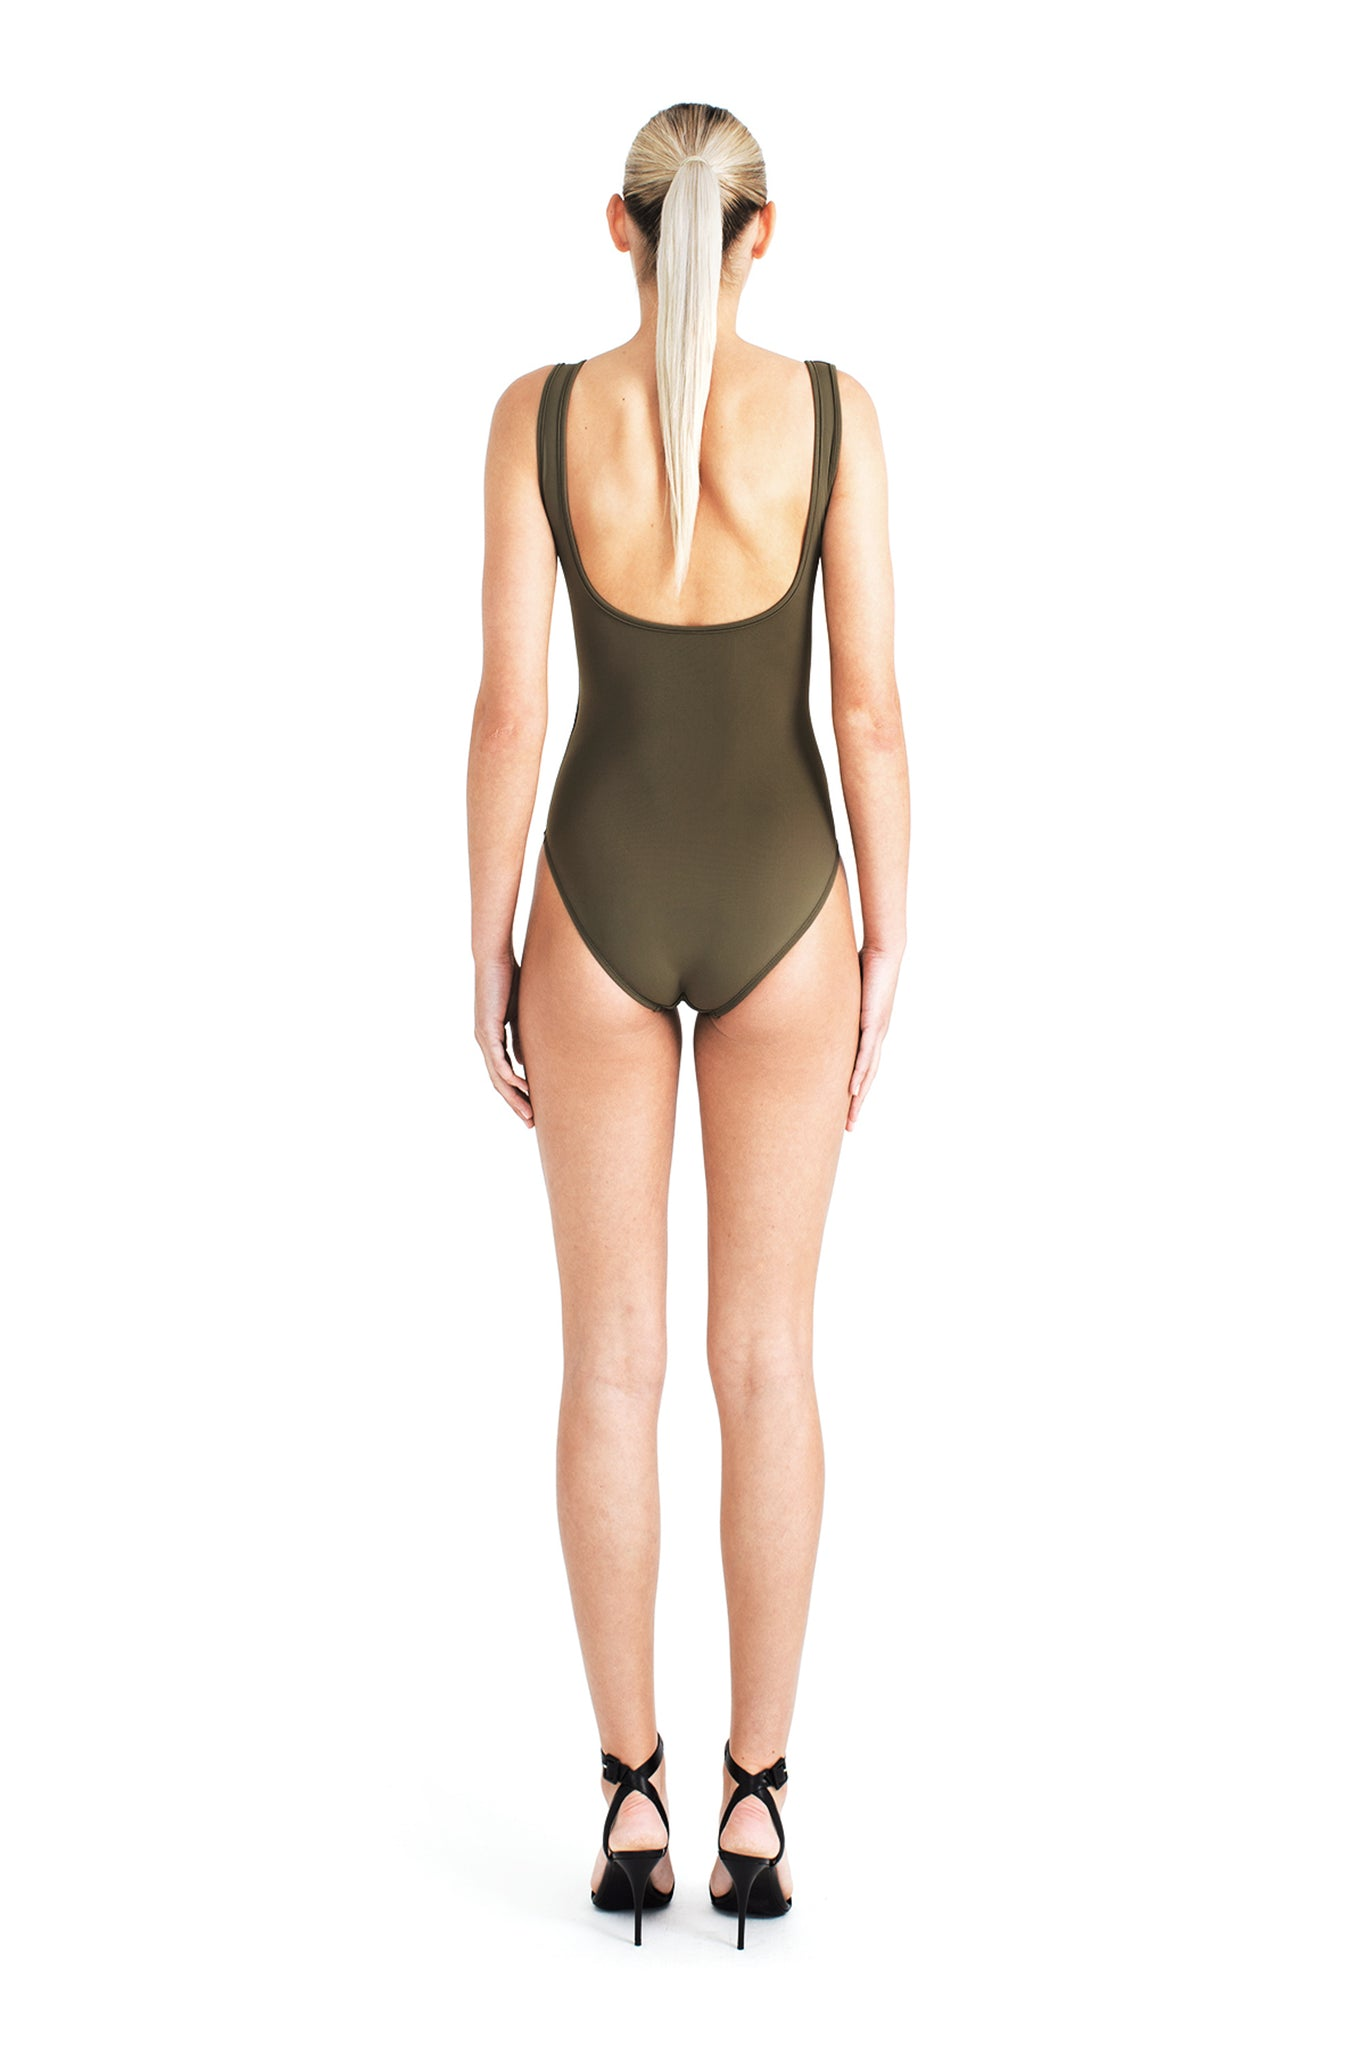 INES ONE PIECE - KHAKI